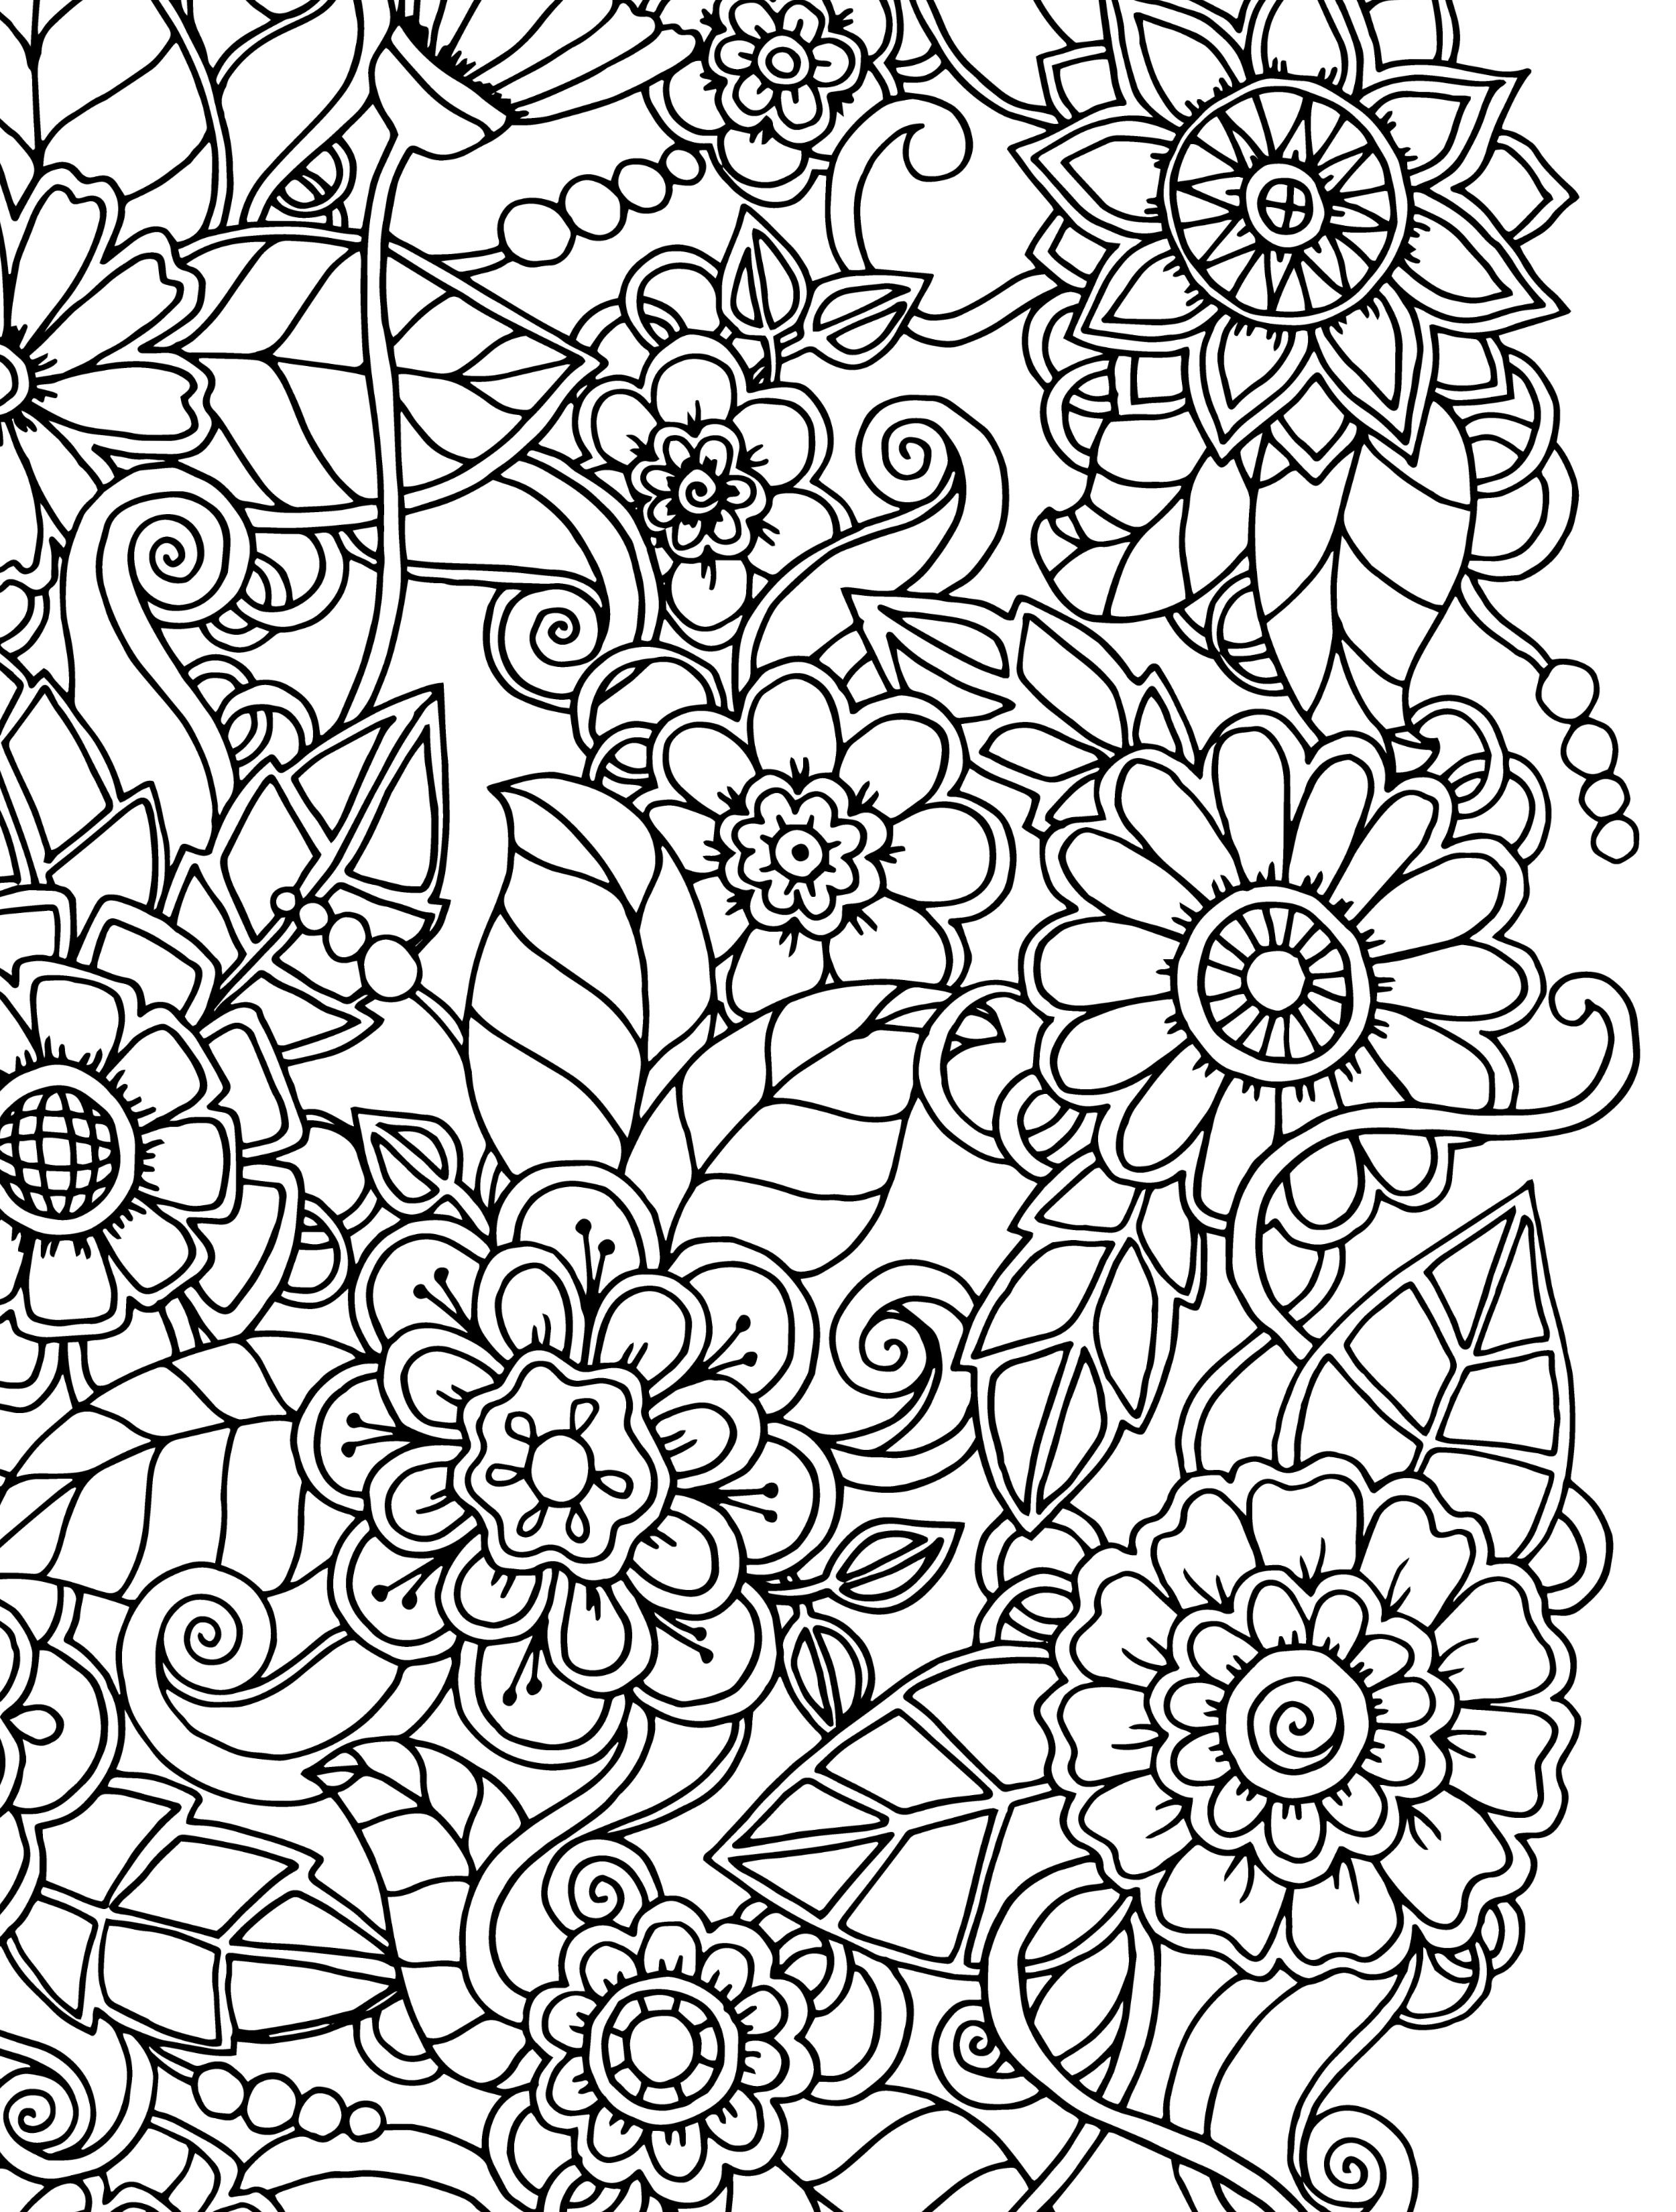 32++ Full page coloring sheets for adults free download